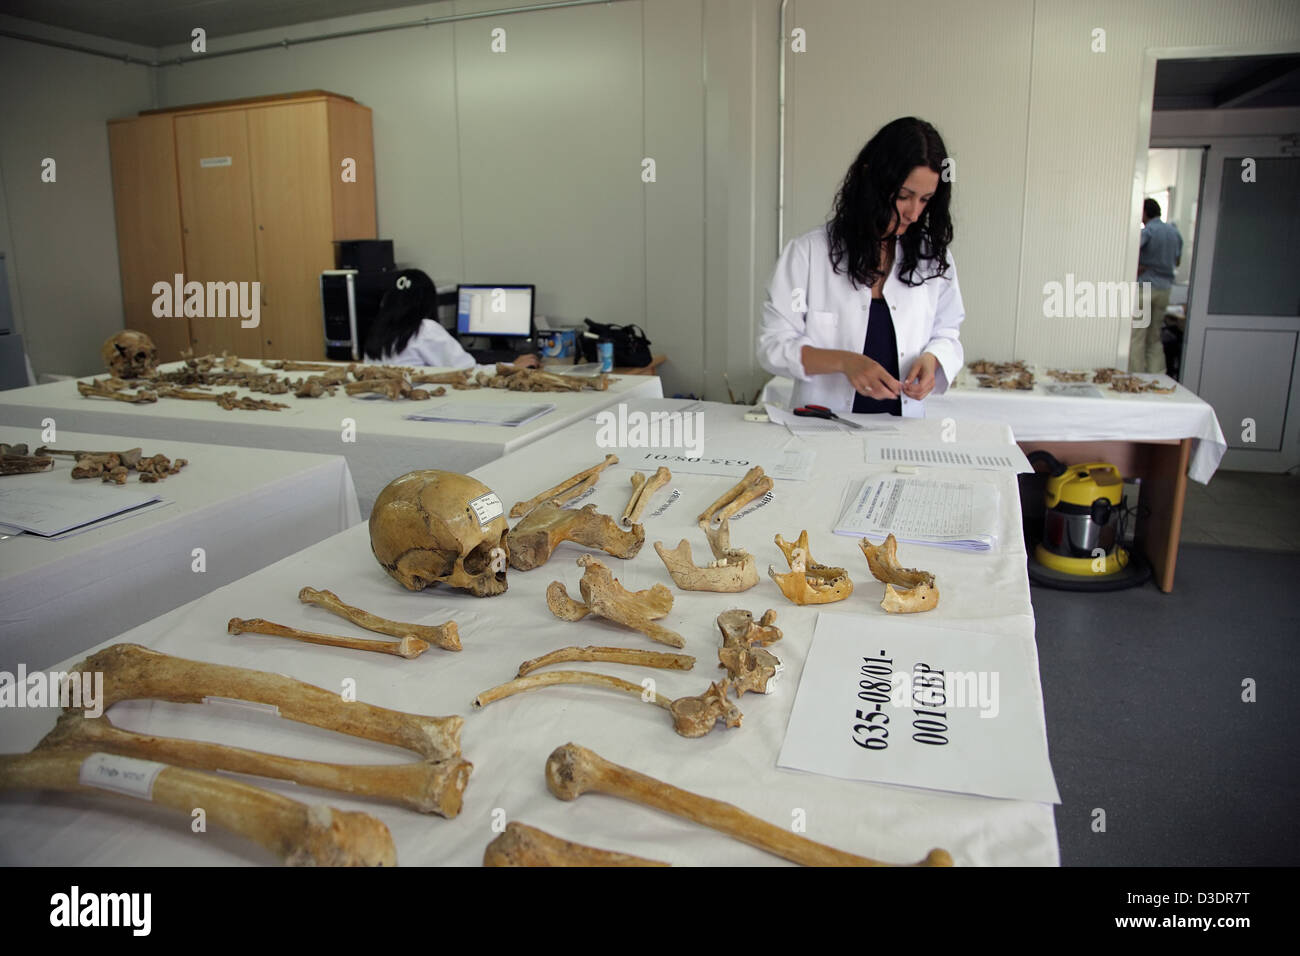 Anthropology lab of the Committee on Missing Persons in Cyprus - Stock Image